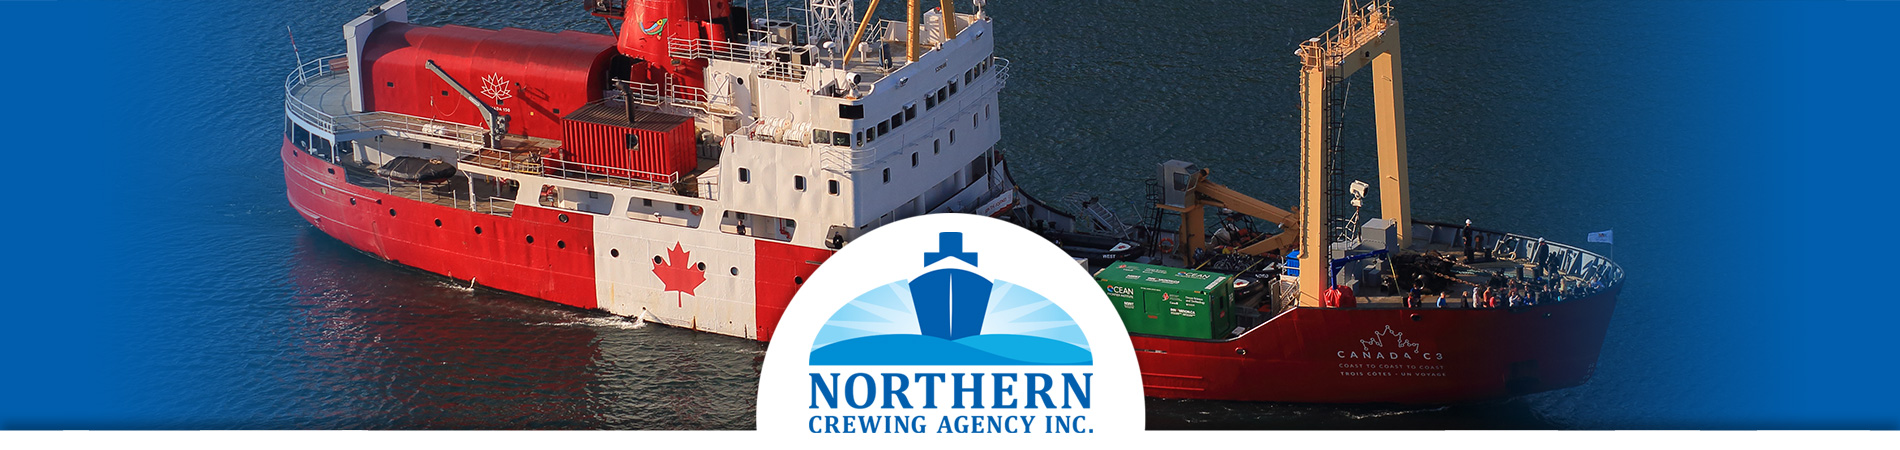 Northern Crewing Agency